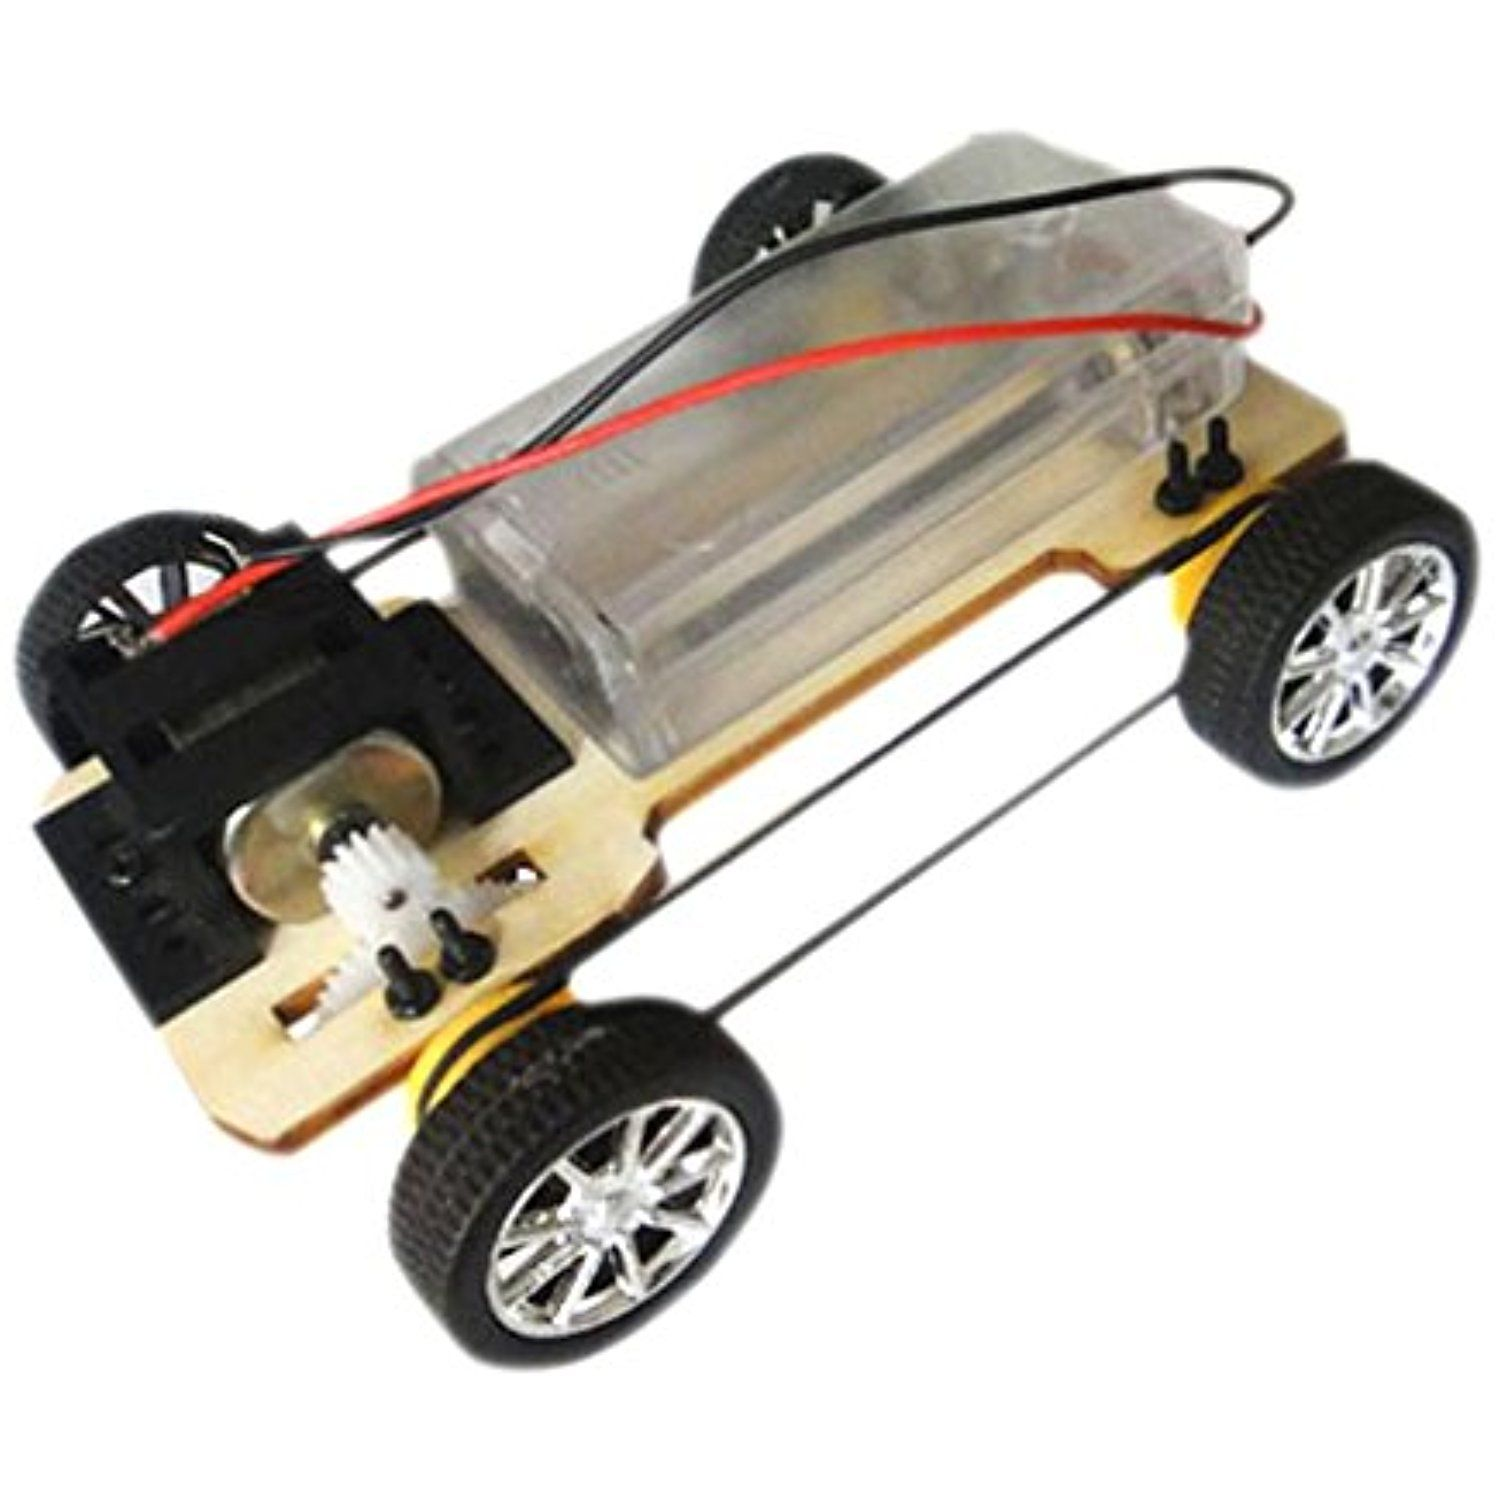 Car toyfour wheel drive toy diy car kit children educational gadget cheap toy cars for sale buy quality toys not made in china directly from china toy transmitter suppliers diy kit hand made buggies technology assembles solutioingenieria Choice Image